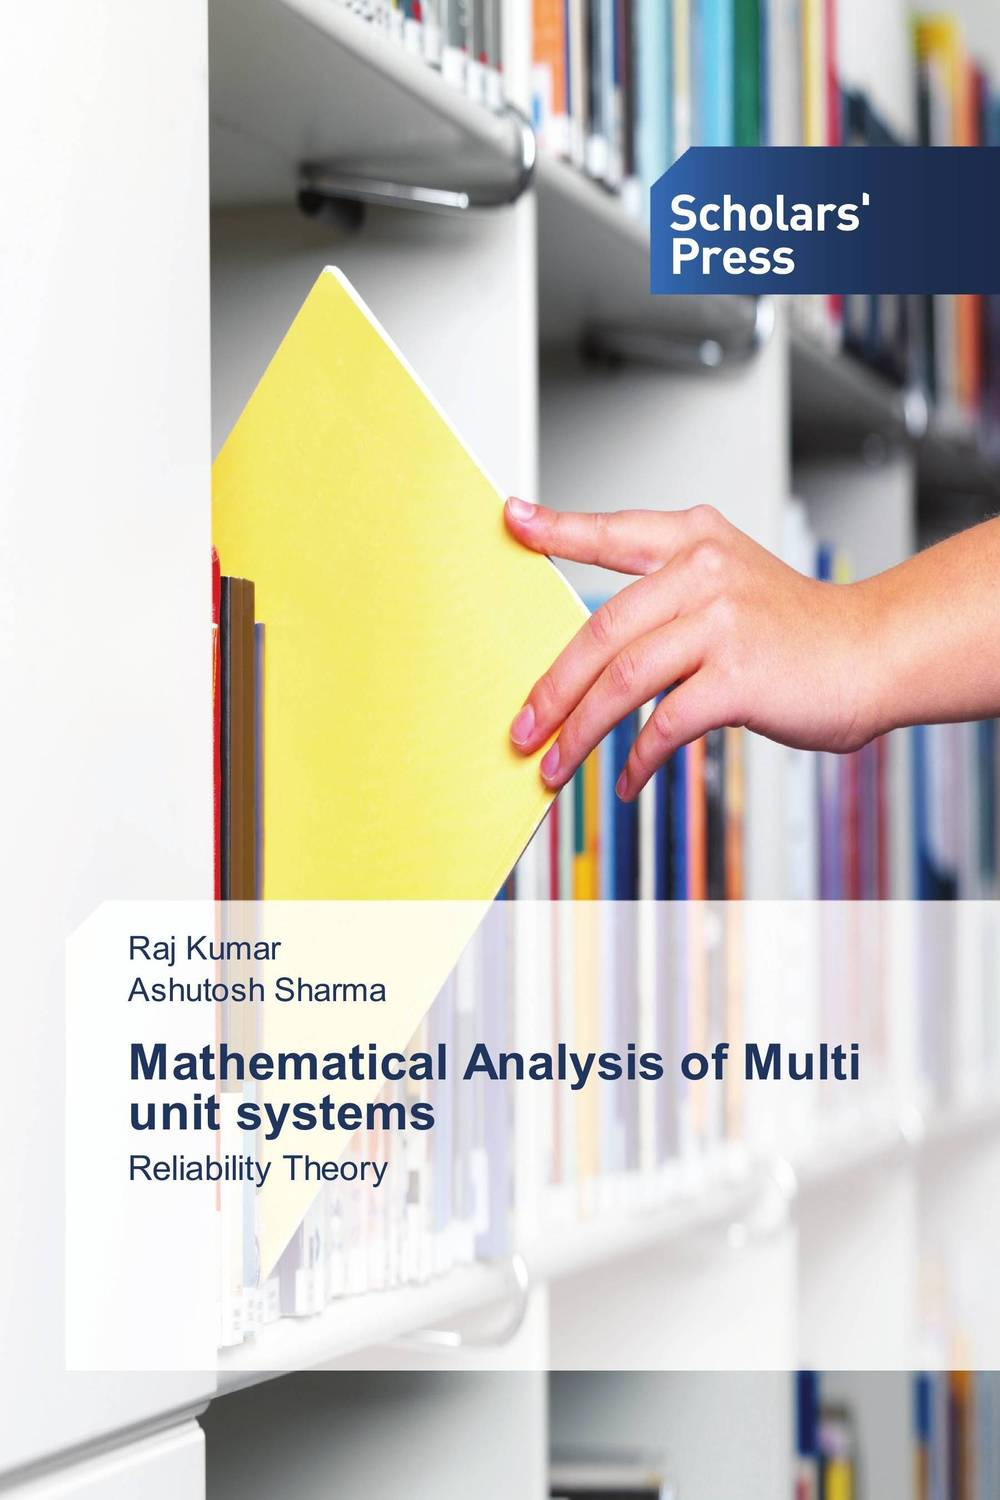 Mathematical Analysis of Multi unit systems asmaa chouairi mohamed el ghorba and abdelkader benali reliability and maintenance analysis of complex industrial systems